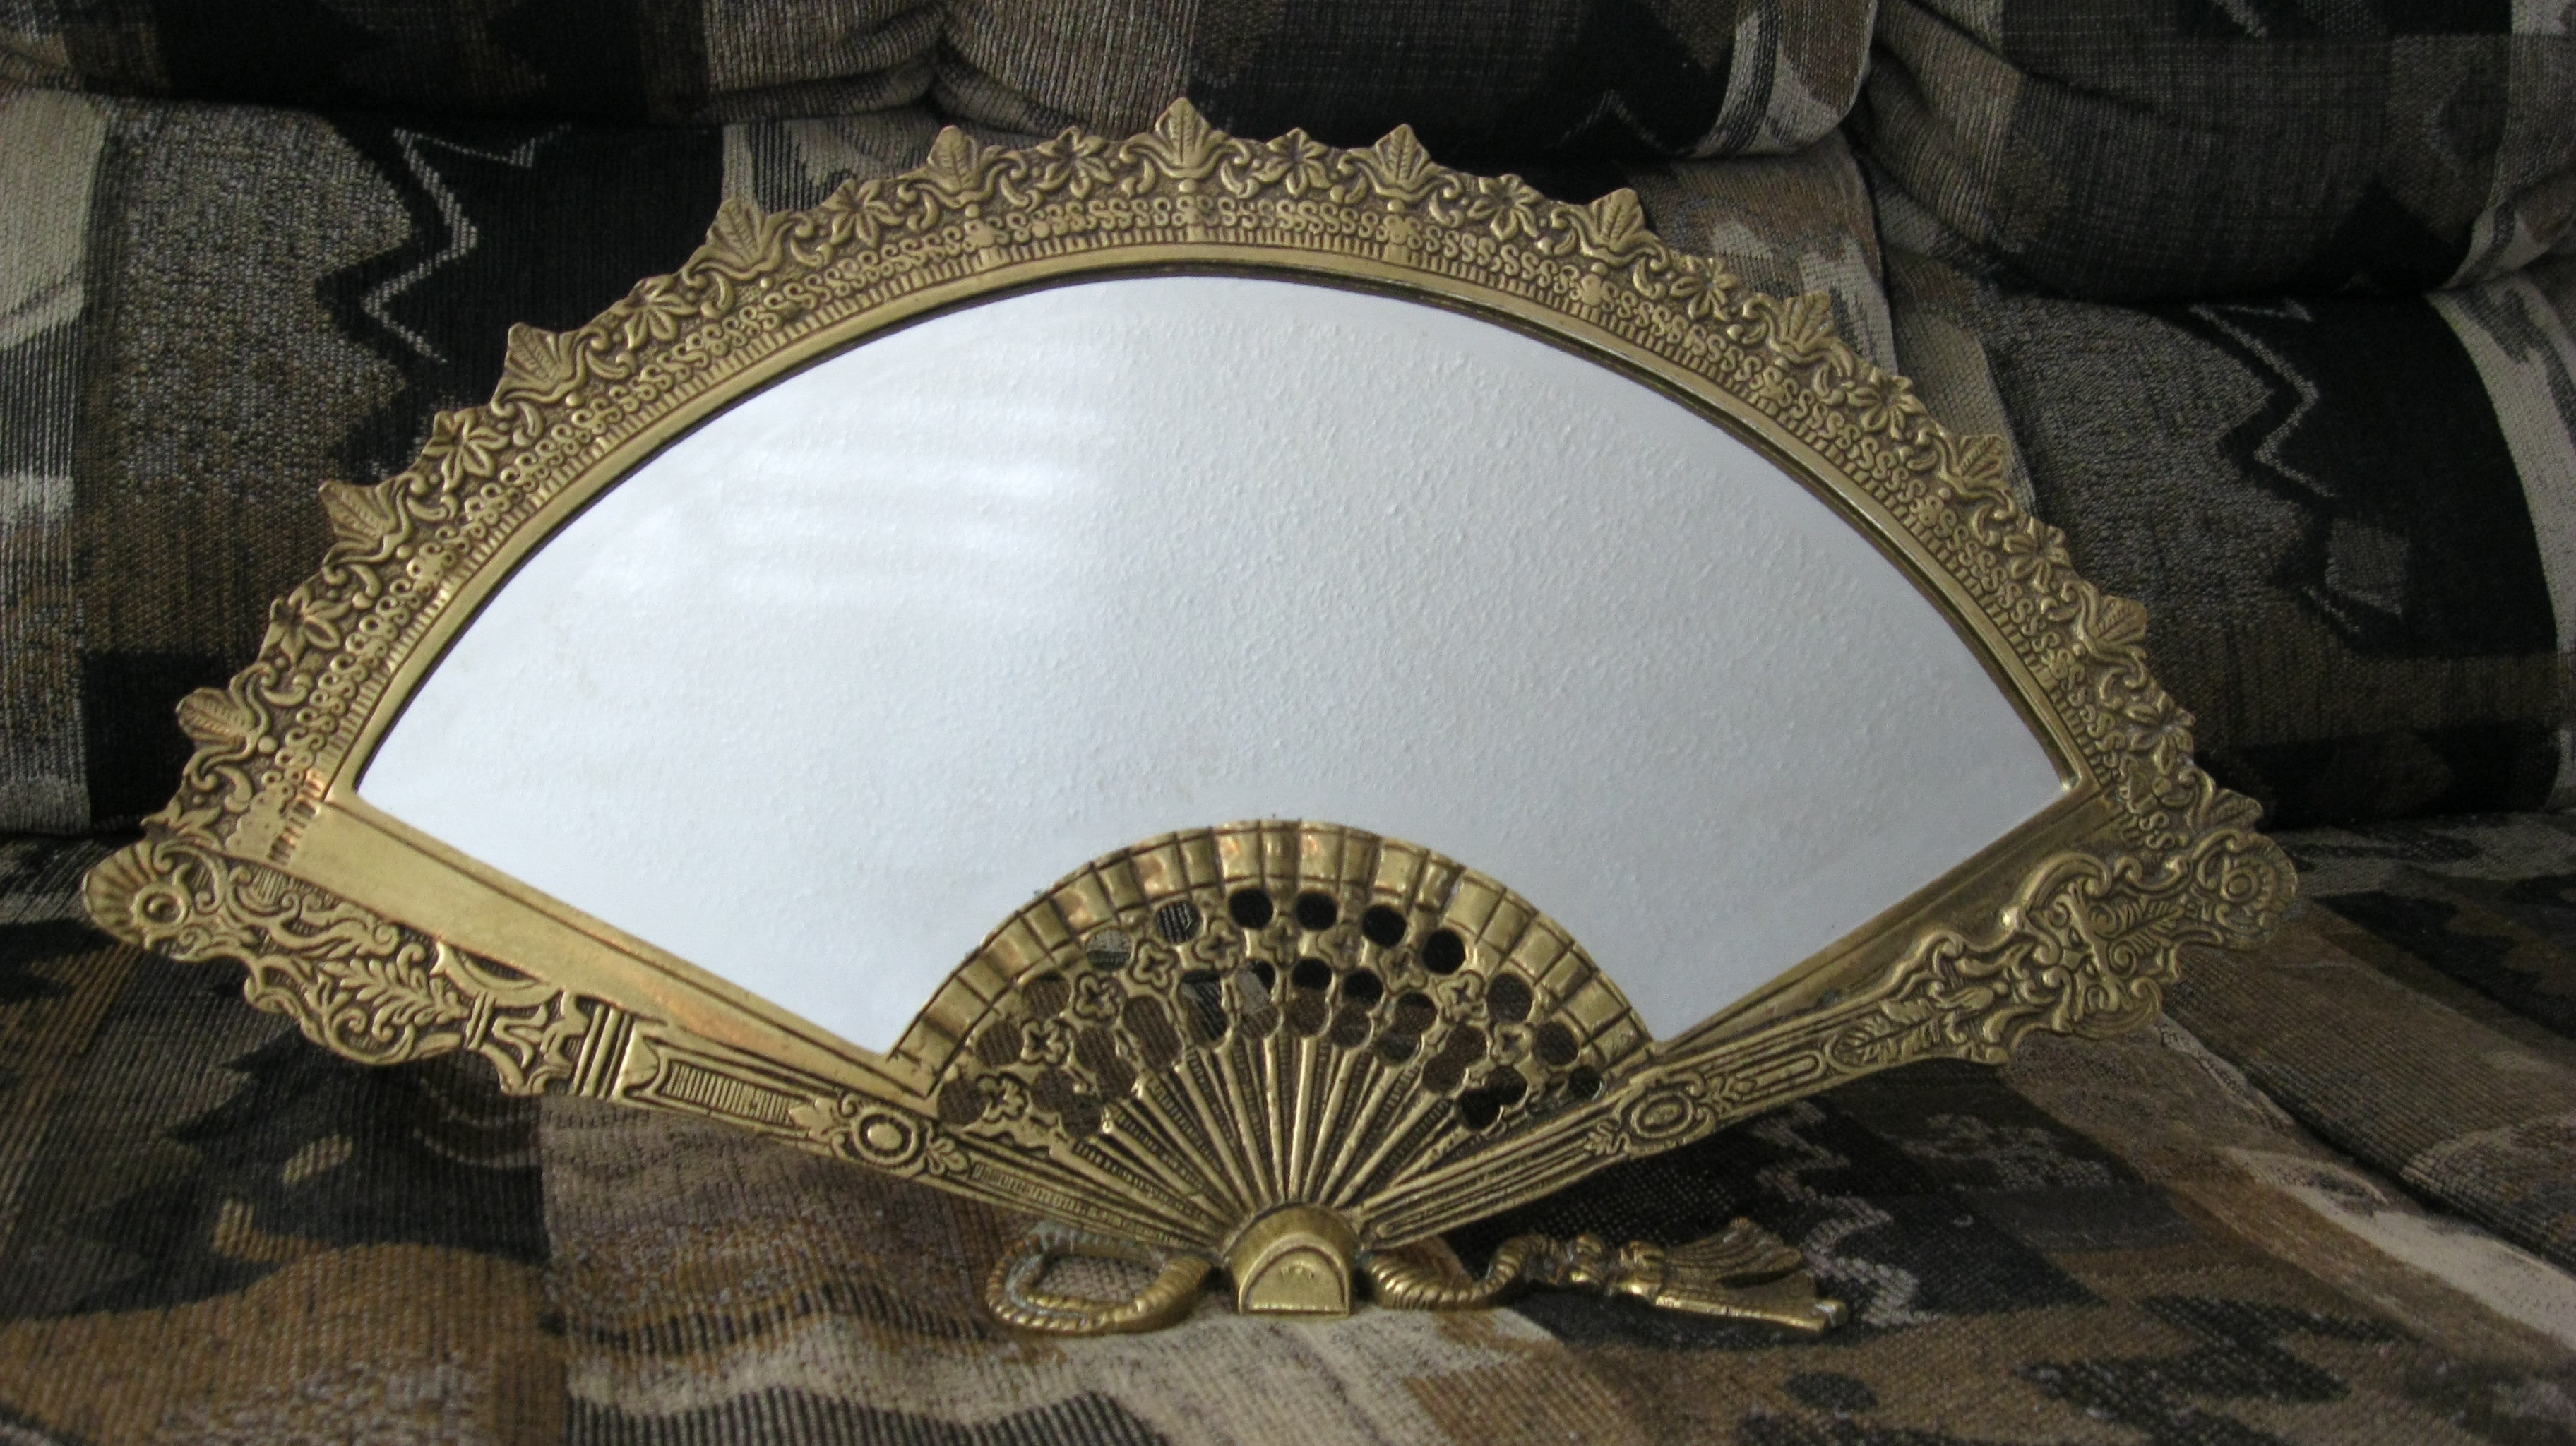 Antique Victorian Solid Brass Fan Mirror Antique Appraisal Regarding Victorian Mirrors Antique (Image 8 of 15)